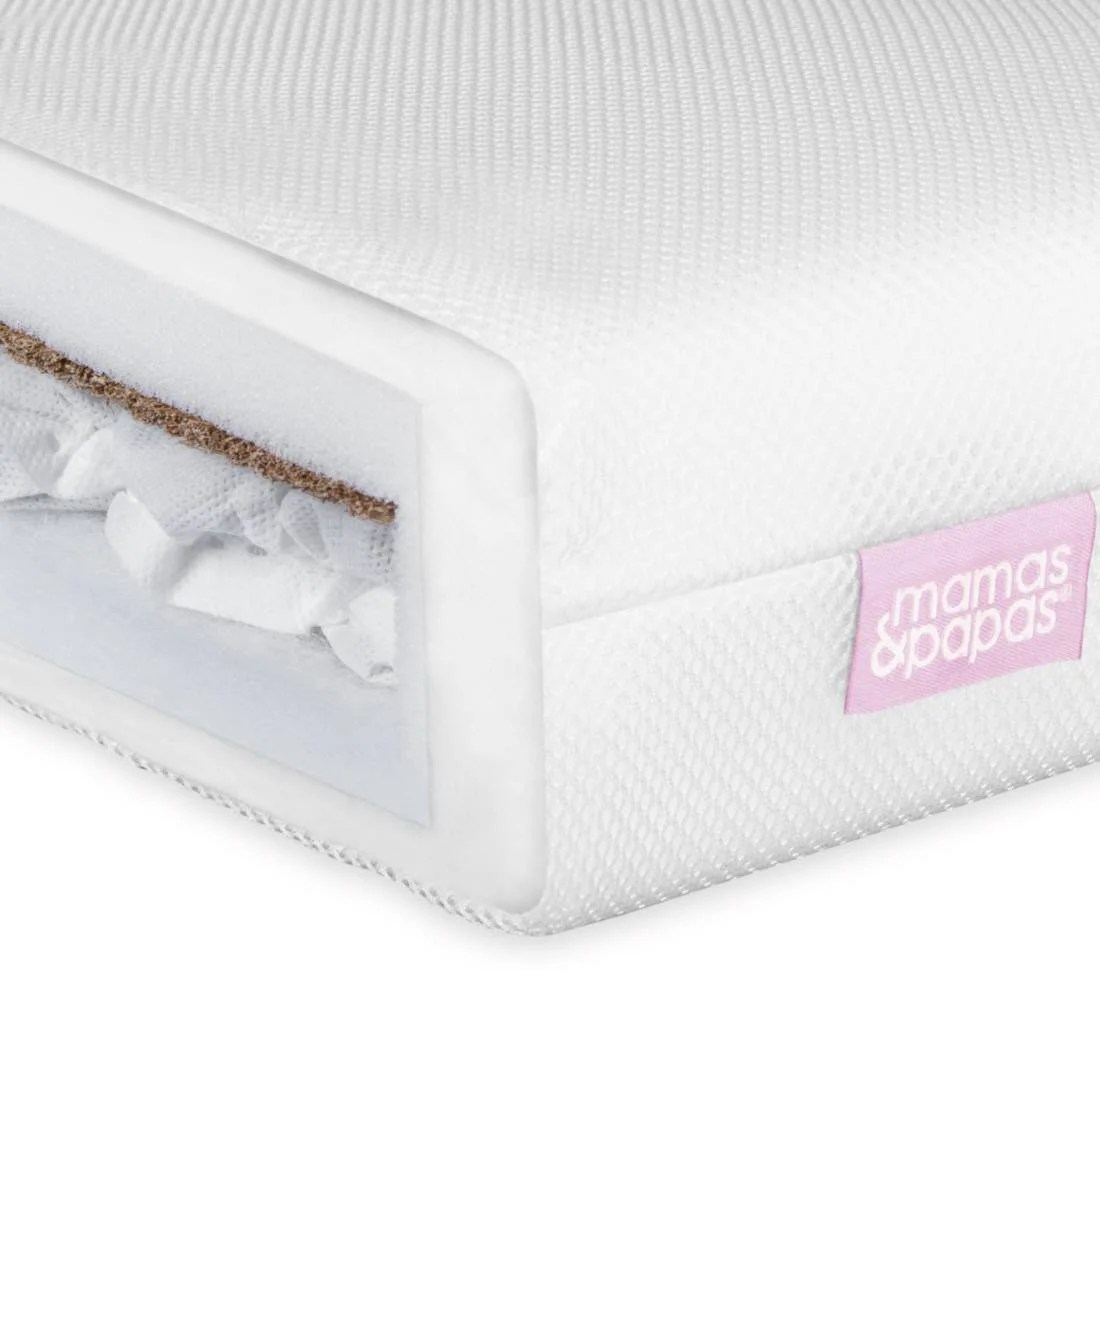 Cot Mattress 170 X 40 Best Cot Mattress The Best Foam Fibre Spring And Travel Cot